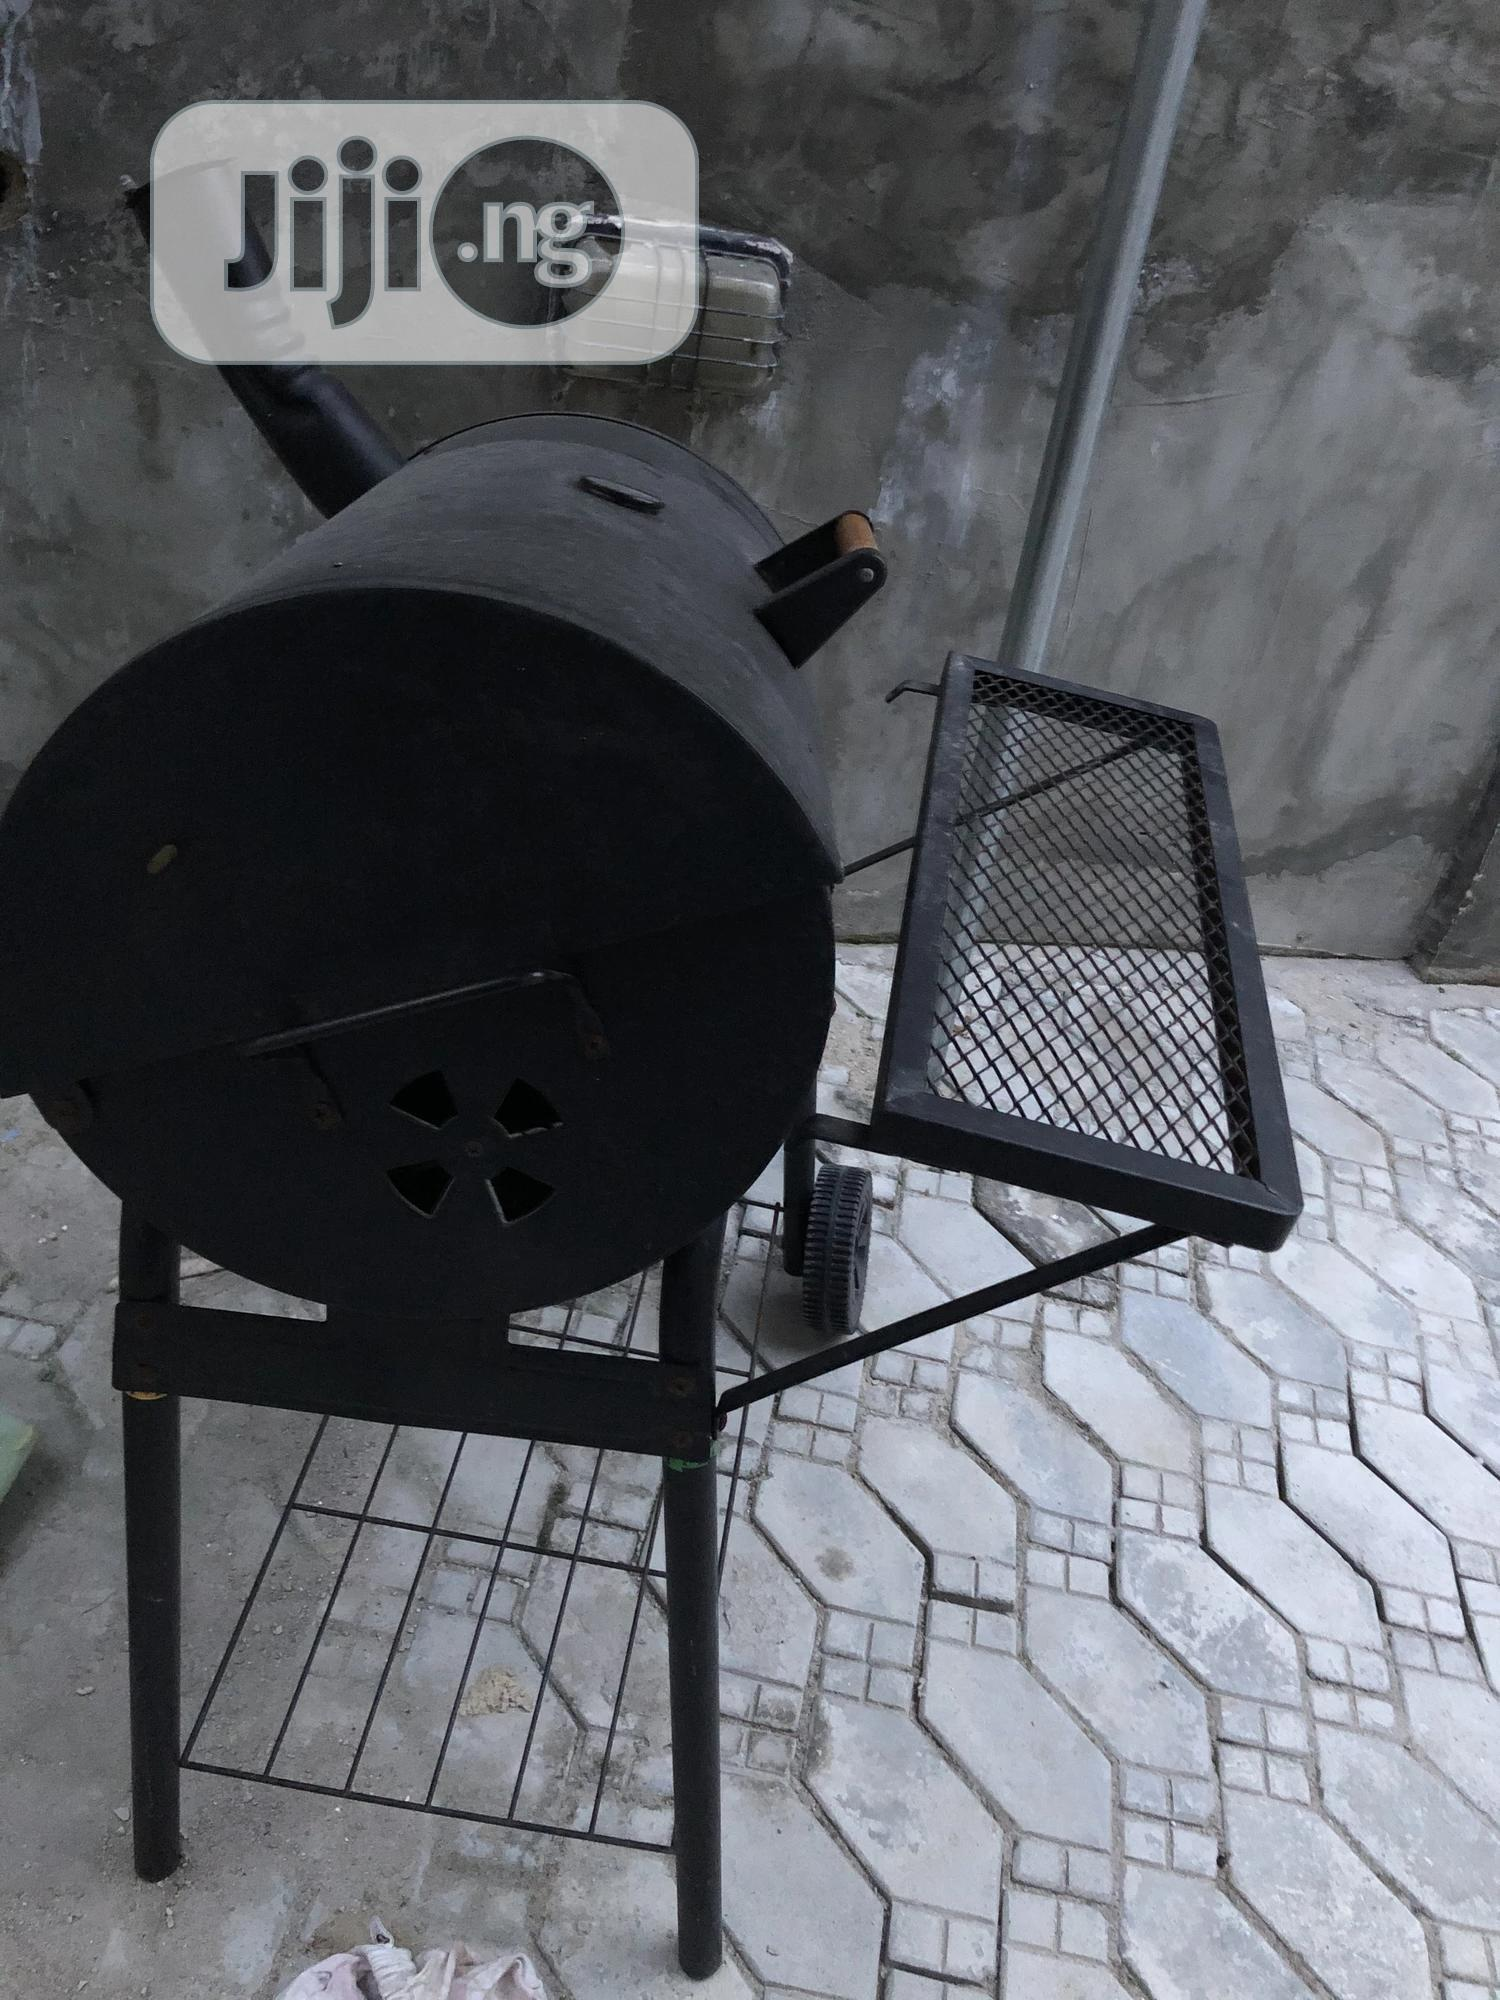 Archive: Commercial Oil Drum(Barbecue Grill)